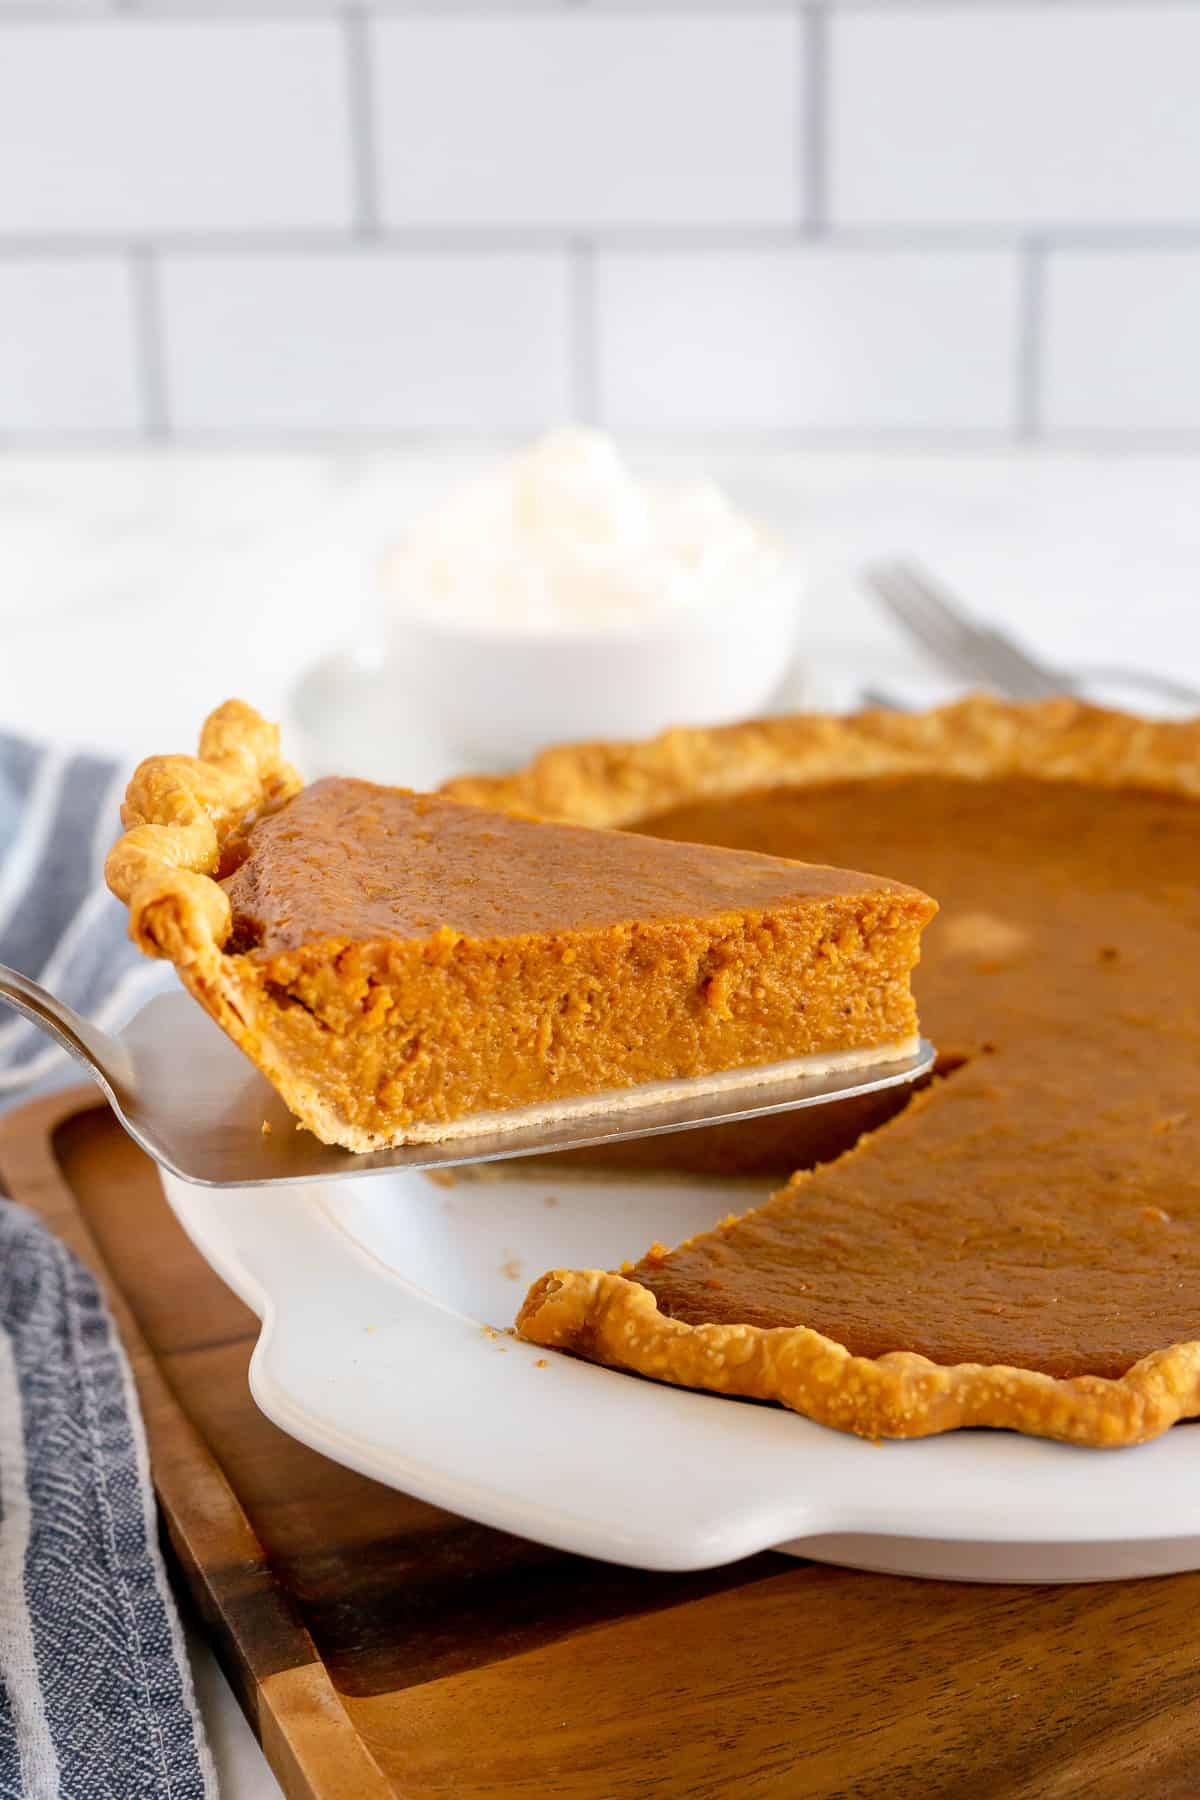 A spatula lifts a slice of pie from a pie dish.